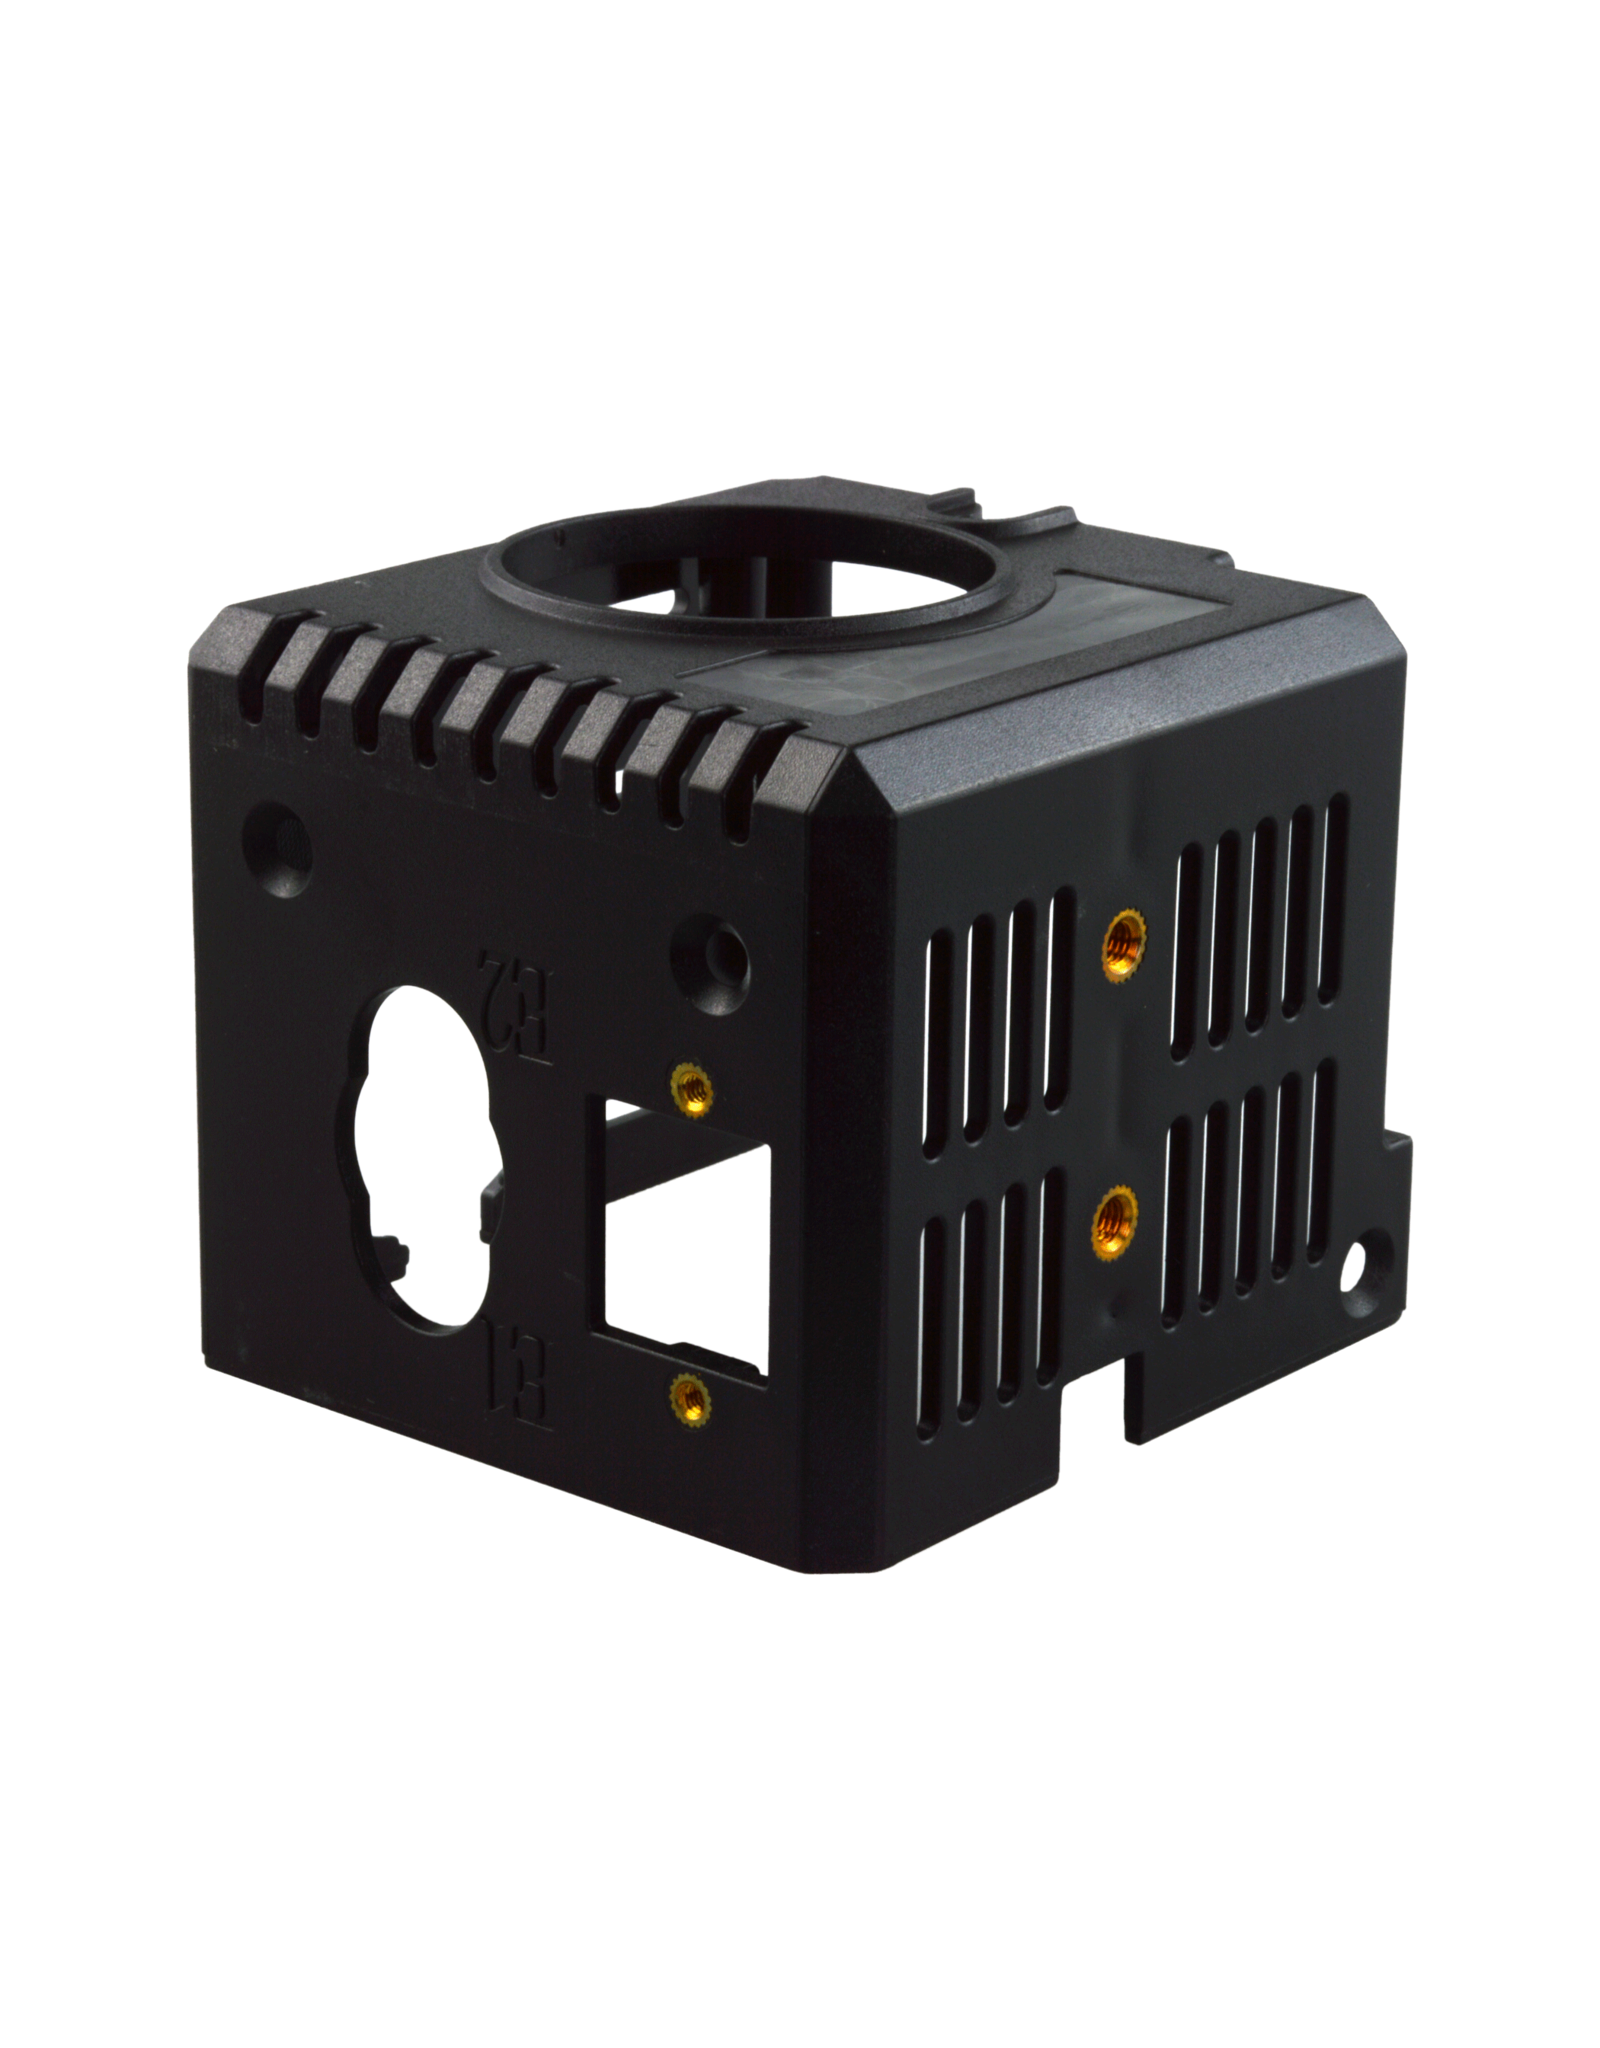 Wanhao Wanhao D12 Hot-end cover/house